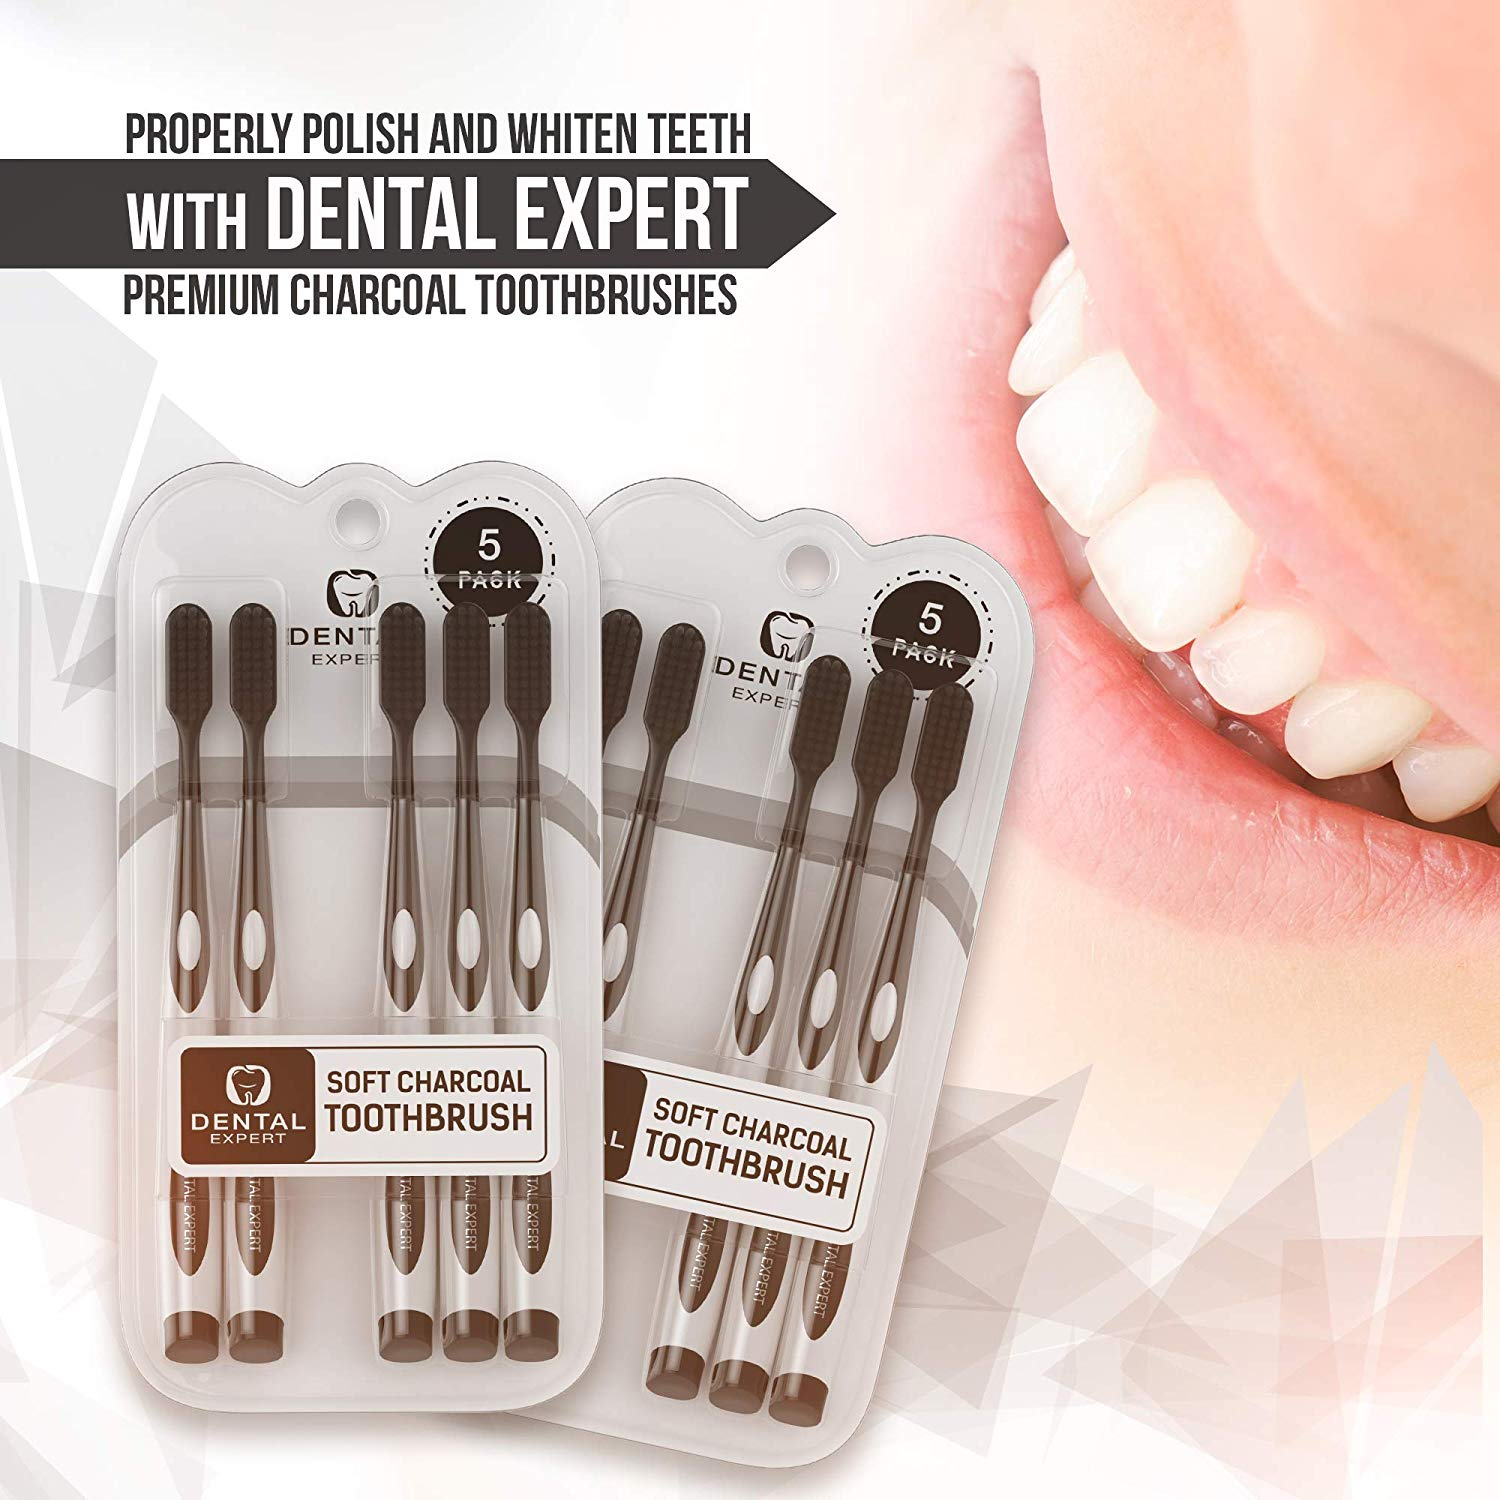 Dental Expert 5 Pack Charcoal Toothbrush [GENTLE SOFT] Slim Teeth Head Whitening Brush for Adults & Children - Ultra Soft Medium Tip Bristles (Black)